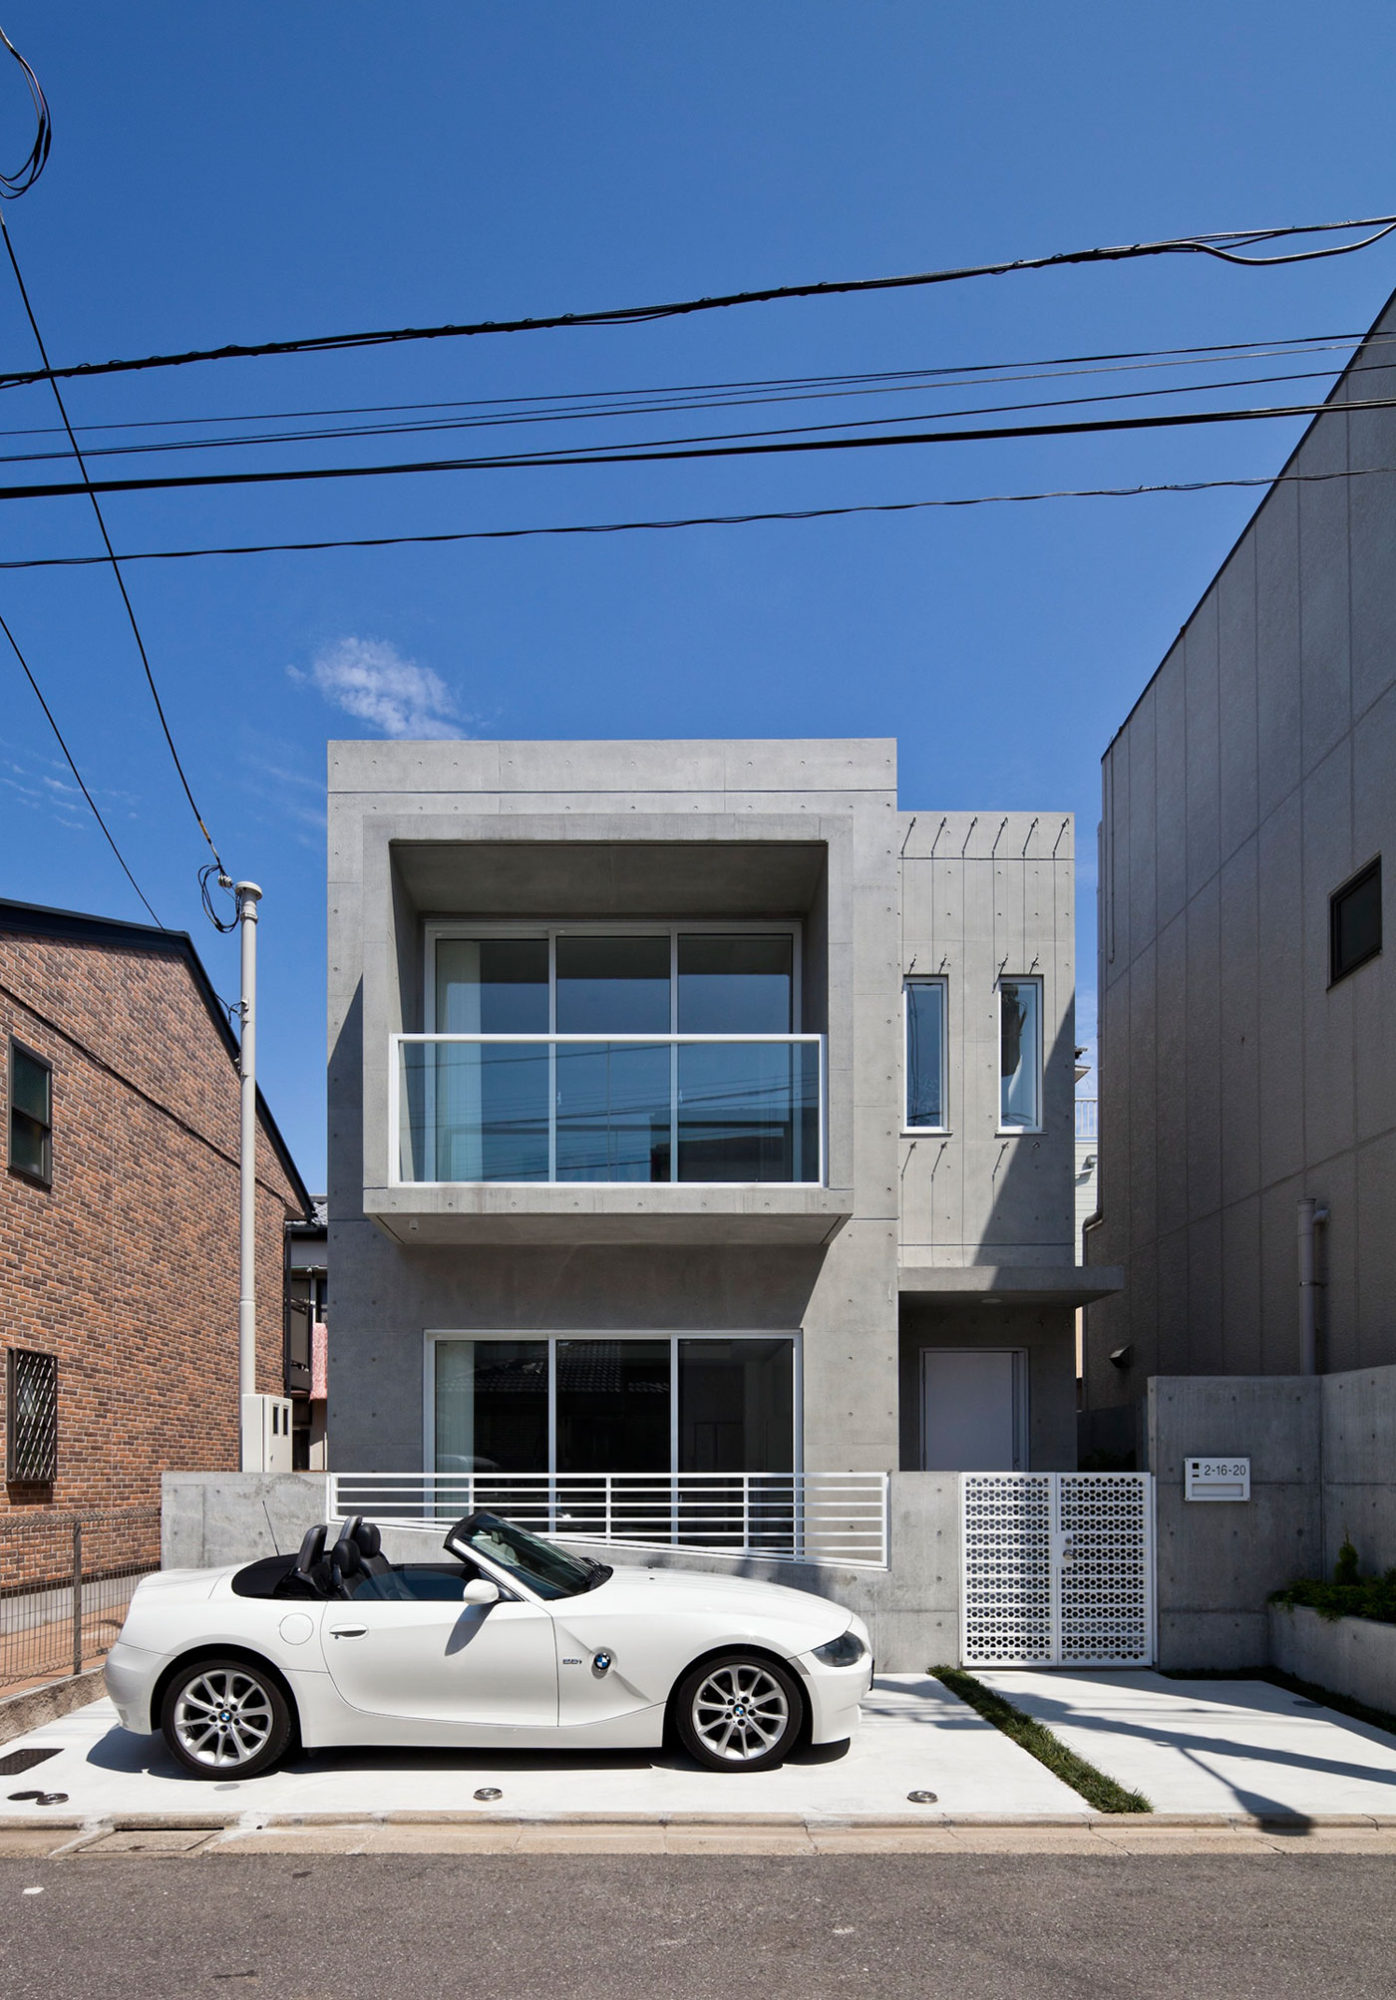 Modern zen design house in tokyo japan 2 for Modern zen house designs